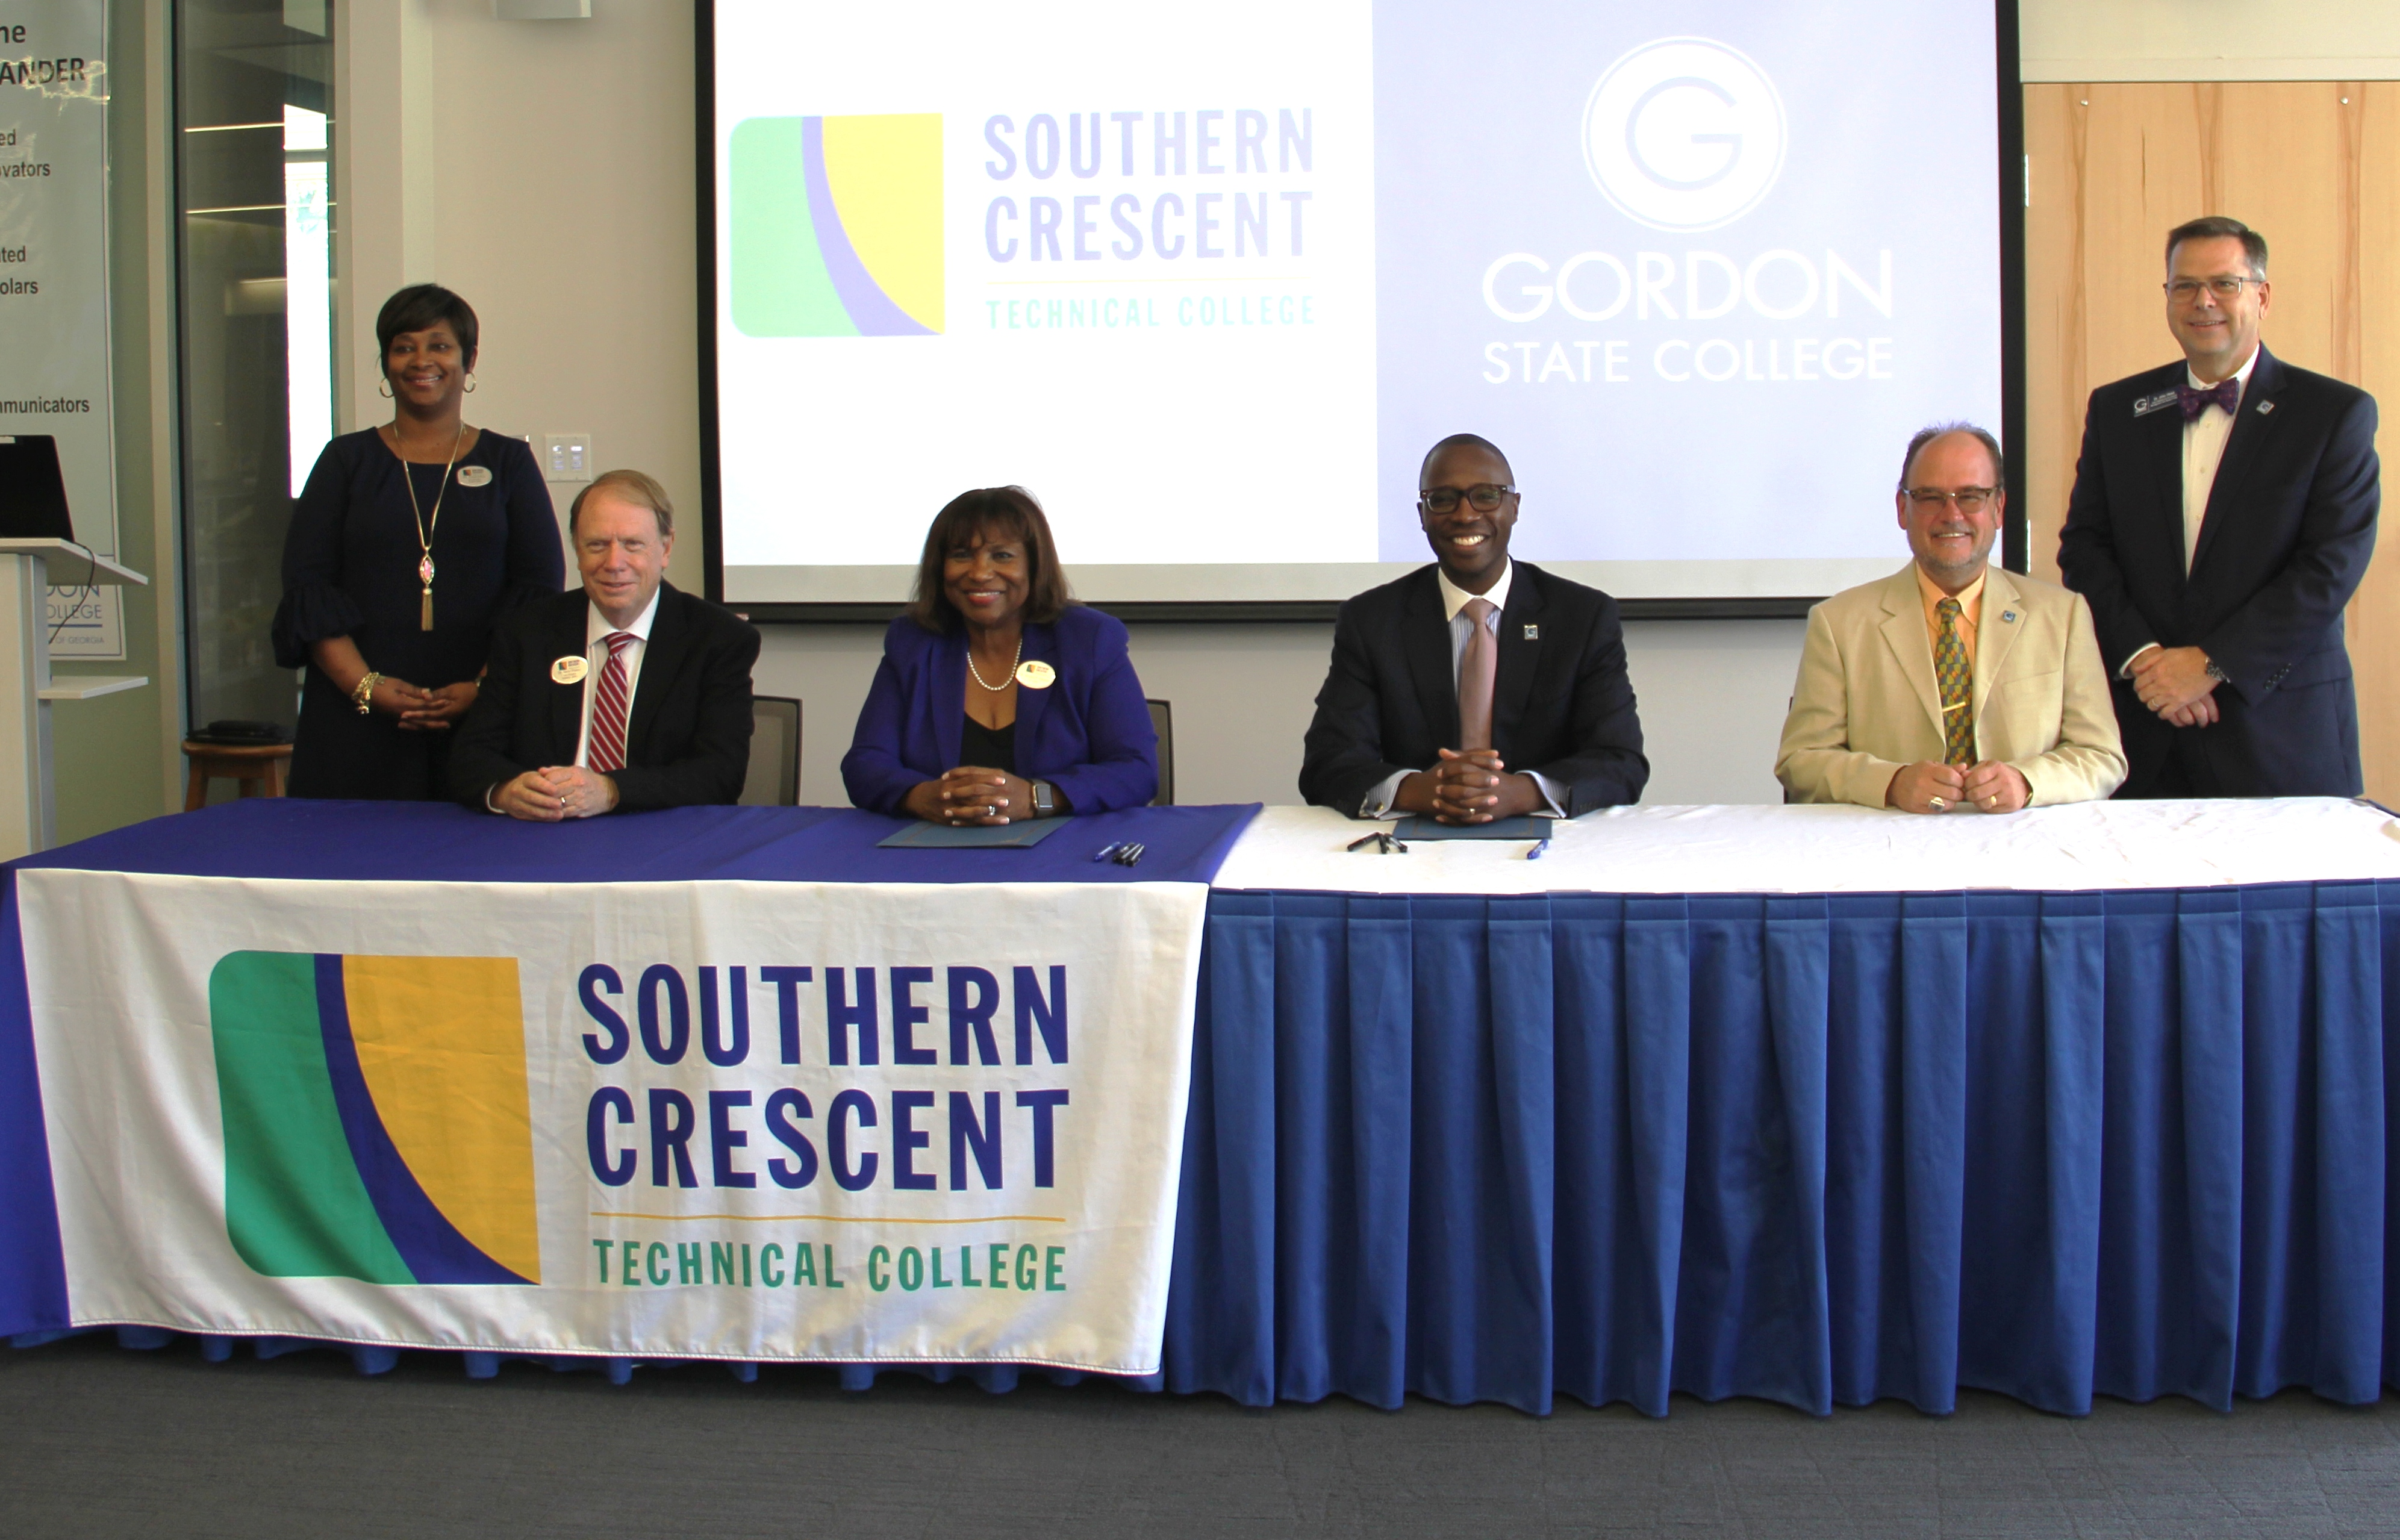 From left, representing Southern Crescent Technical College, Dr. Xenia Johns, Vice President for Student Affairs, Dr. Steve Pearce, Vice President for Academic Affairs, Dr. Alvetta P. Thomas, President, representing Gordon State College, President Dr. Kirk A. Nooks, Dr. Jeffery Knighton, Provost and Vice President for Academic Affairs, Dr. John Head, Vice Prsident for Enrollment Management and Student Affiars.